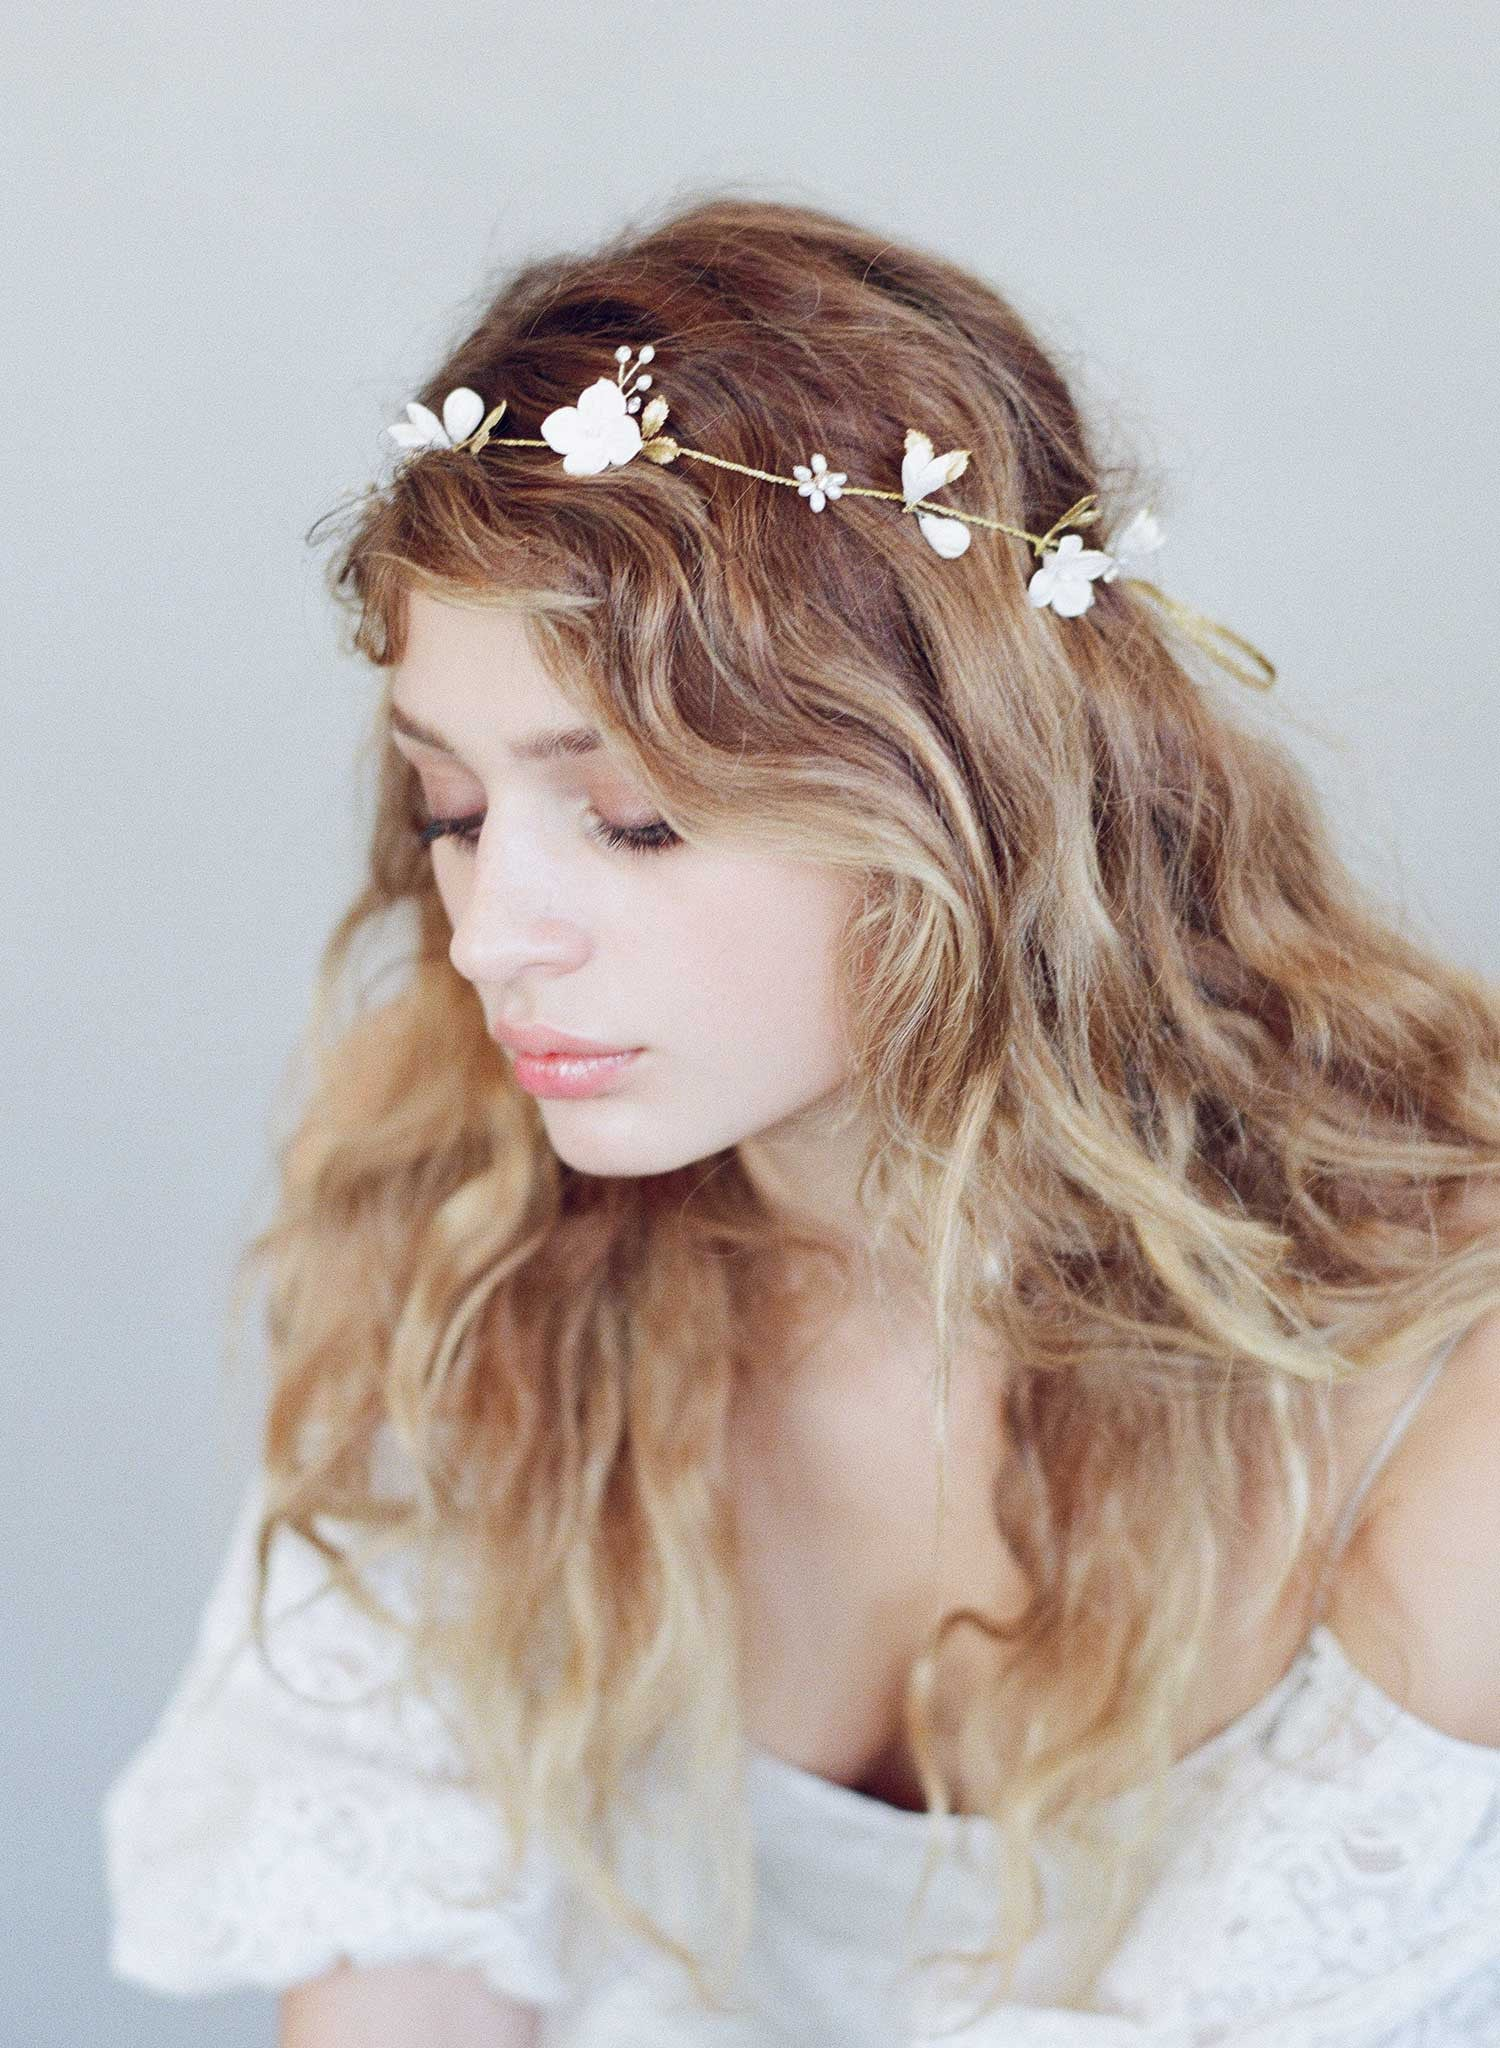 Simple sugar blossom hair vine - Style #738